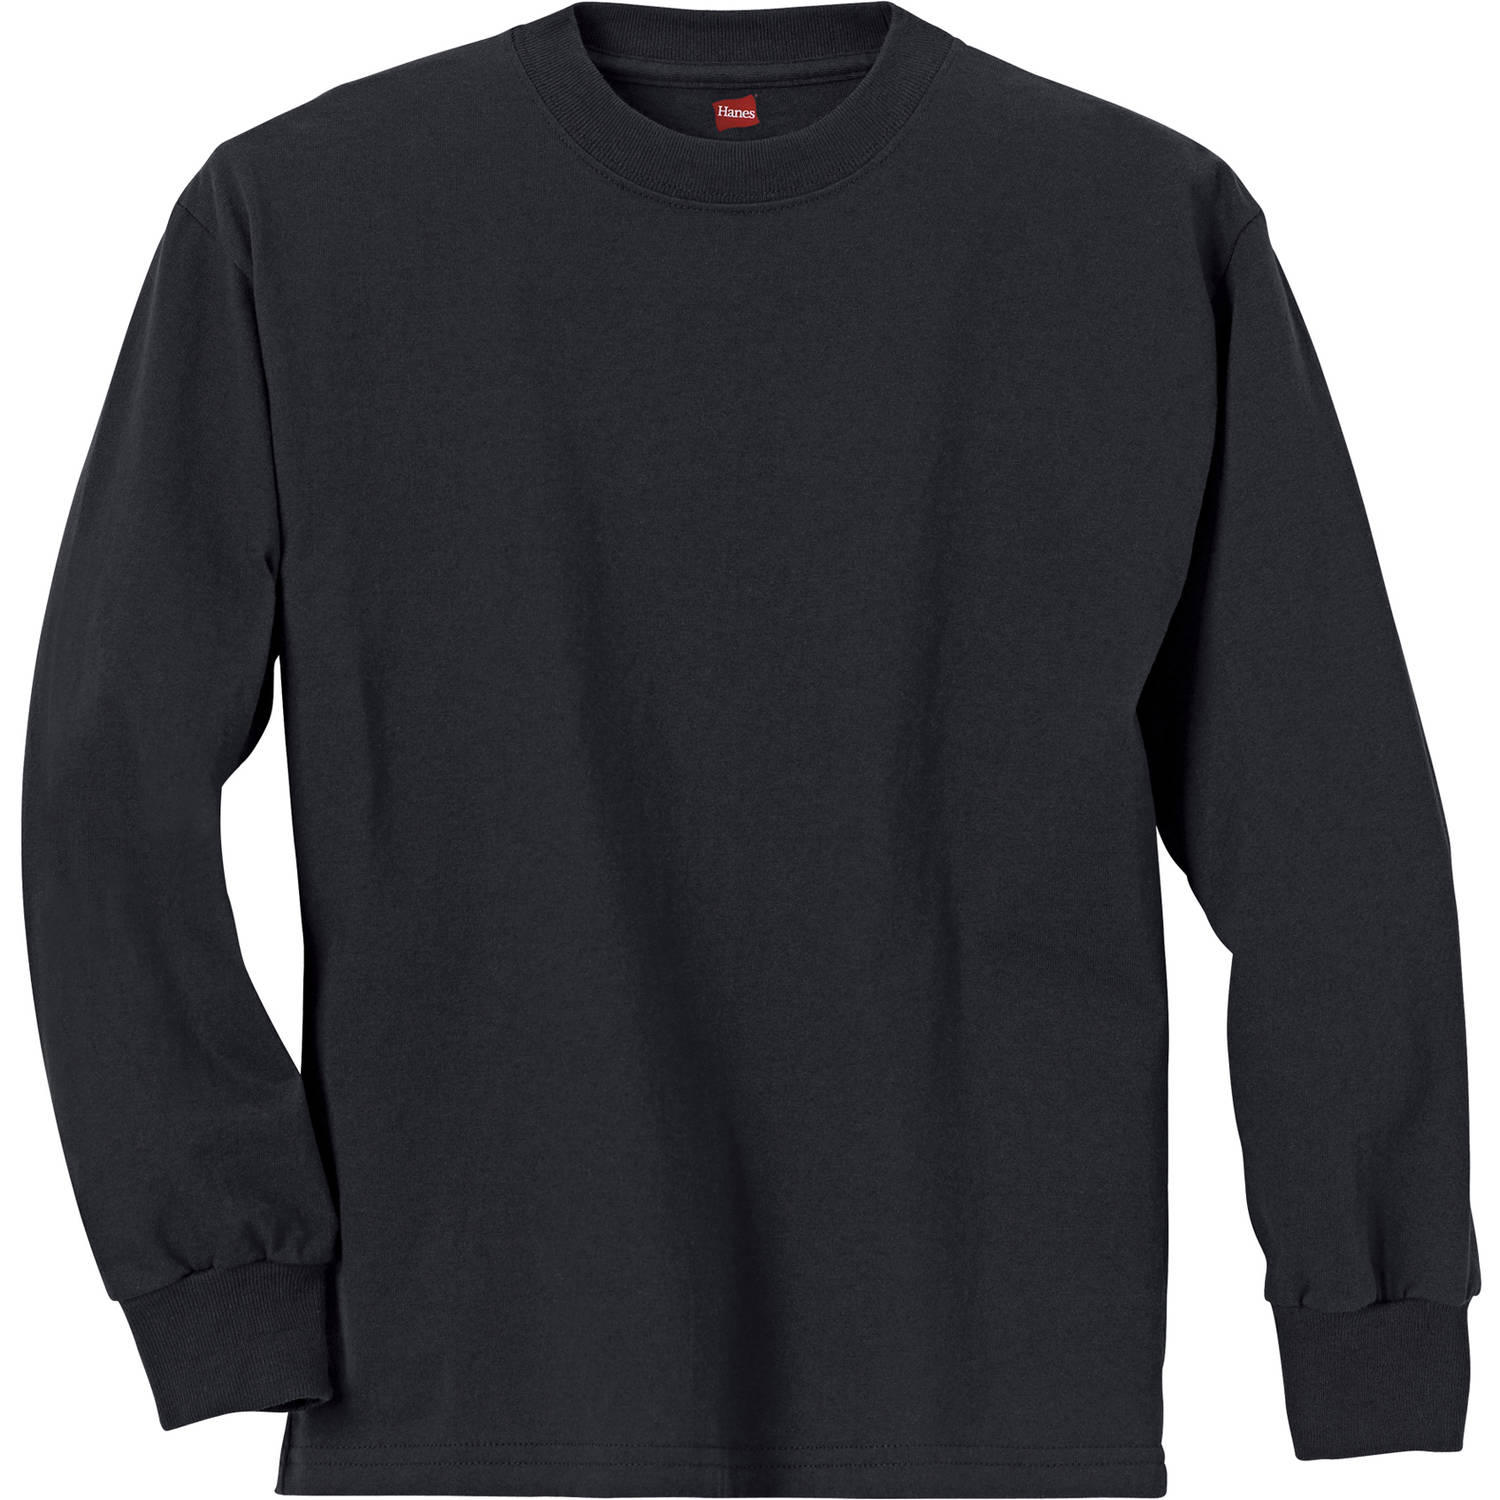 Hanes Boys' Long Sleeve Beefy Tees